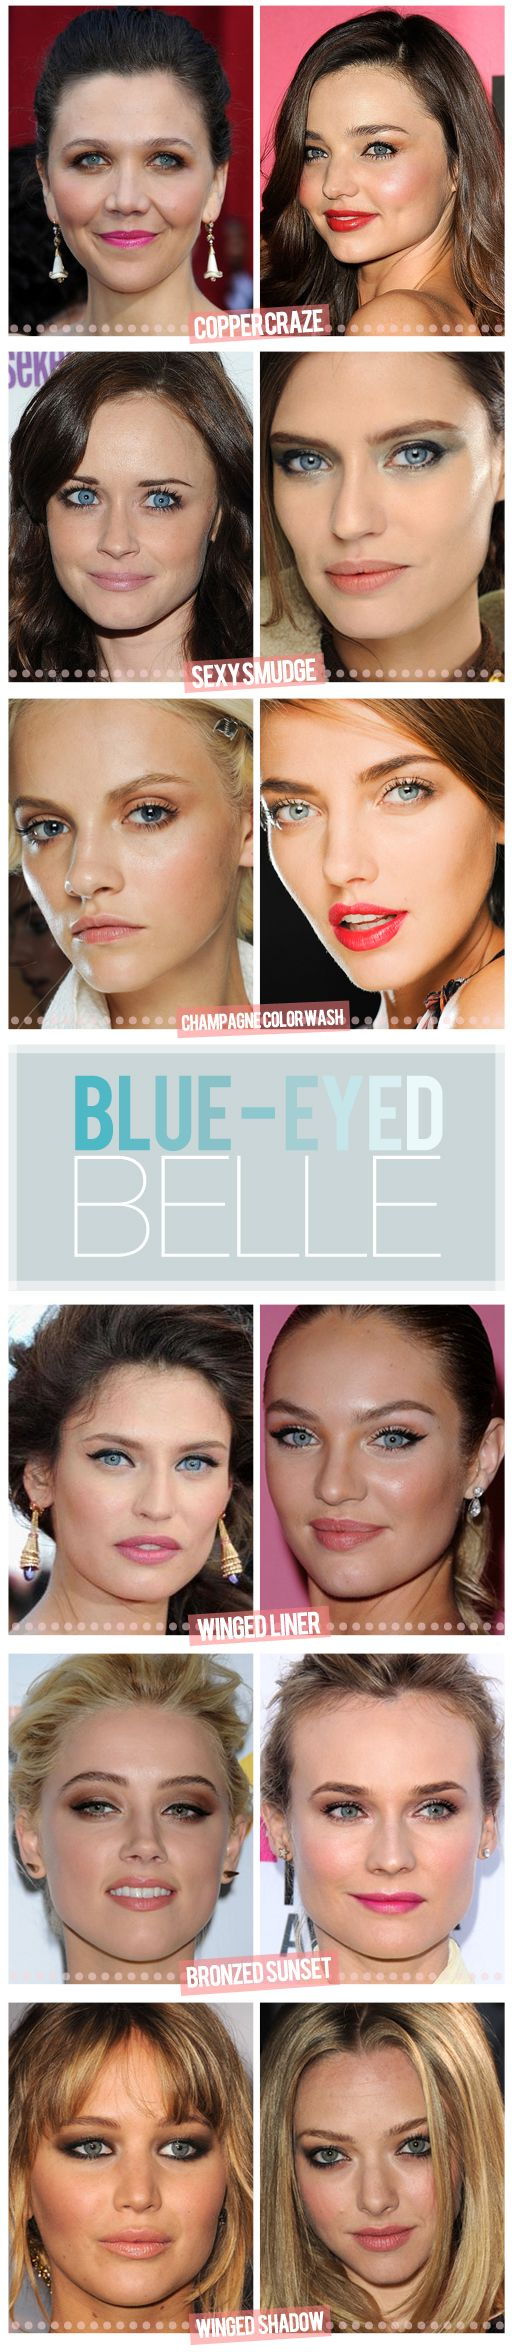 Eye makeup ideas to make blue eyes pop